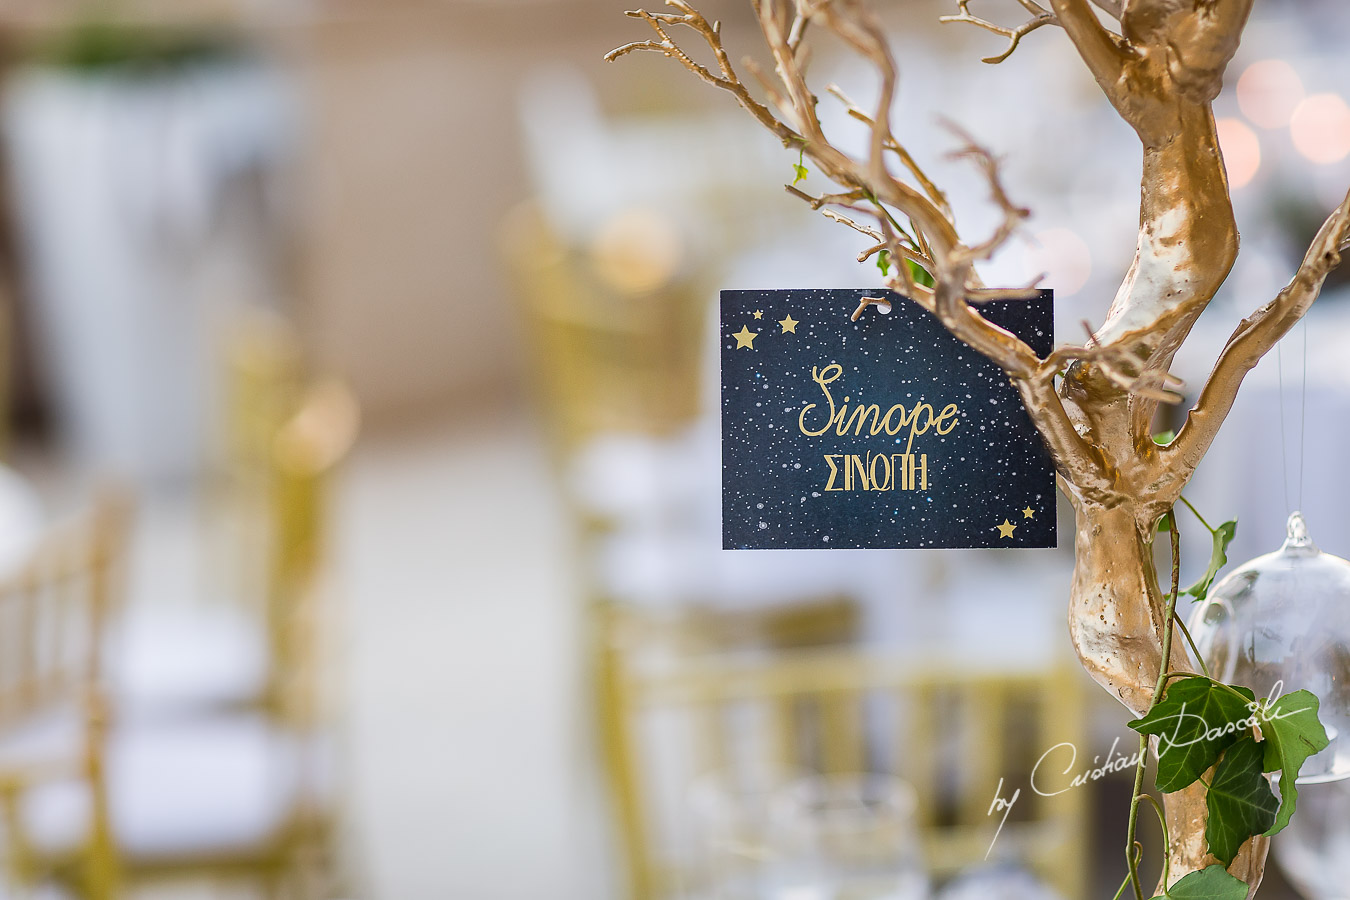 Simply beautiful wedding details captured by Cristian Dascalu at an amazing Wedding at Elea Estate in Paphos, Cyprus.